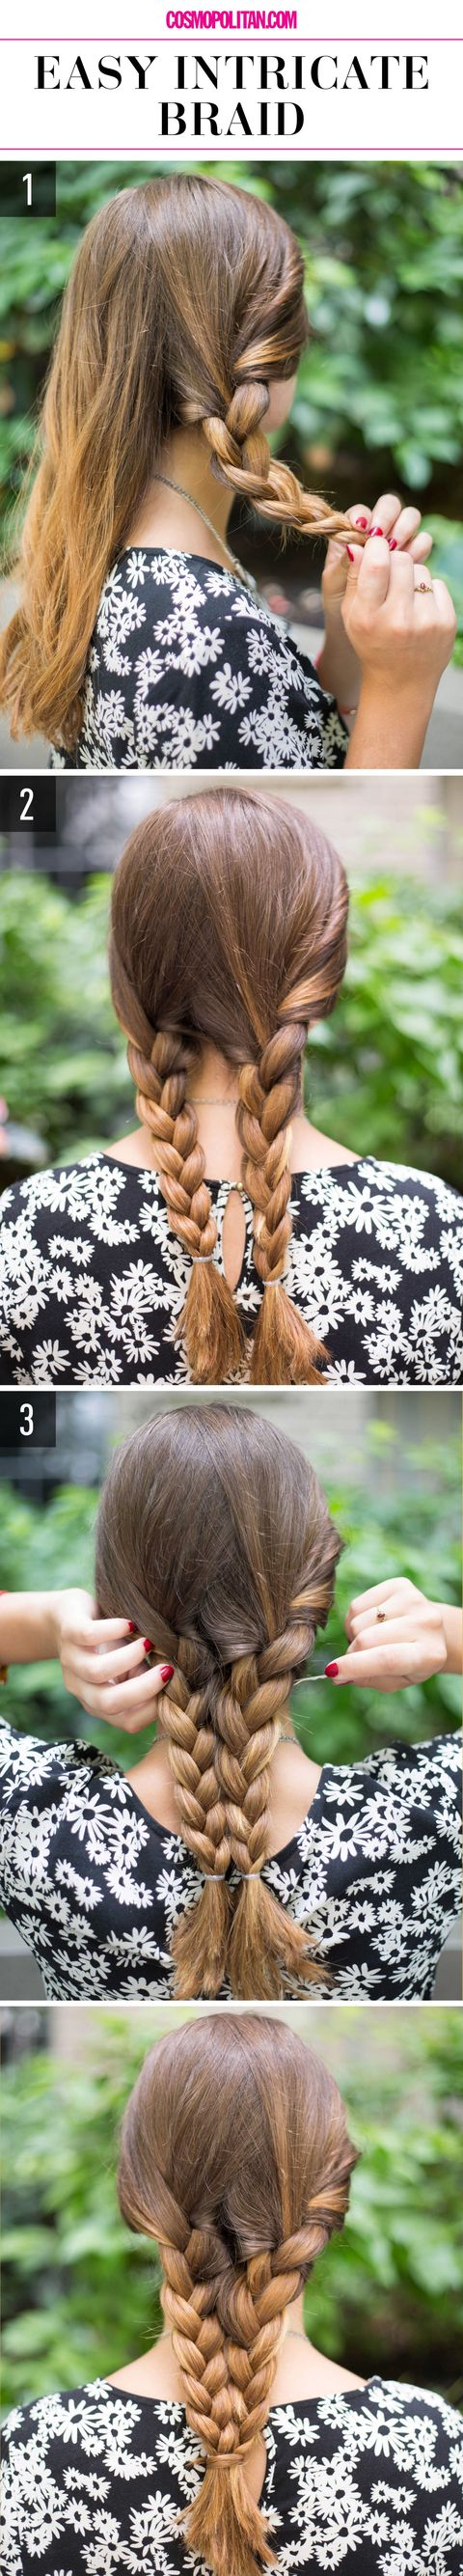 15 Super Easy Hairstyles For 2018 Three Step Hairstyles For Girls